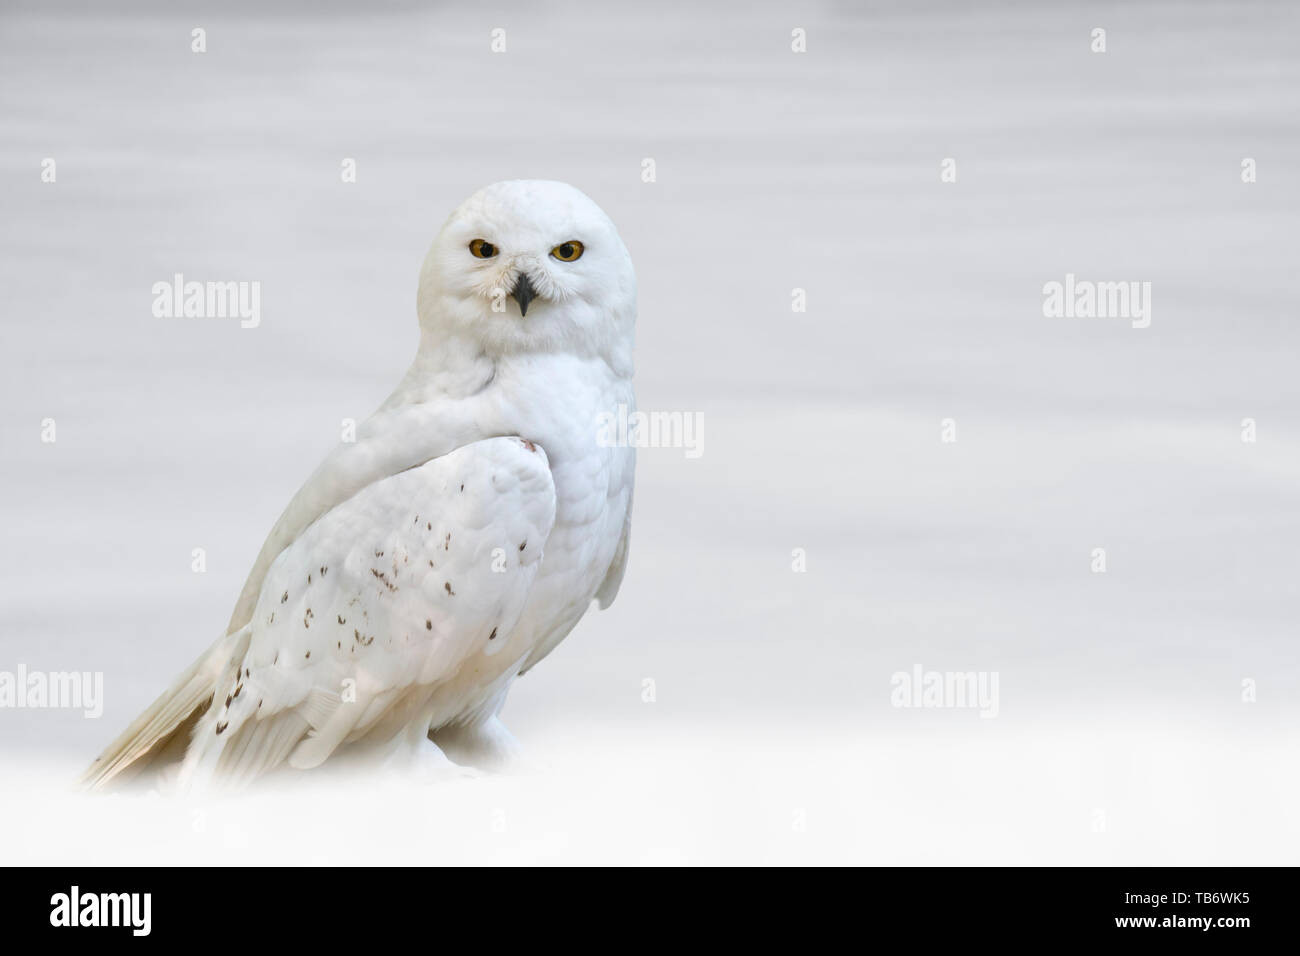 Snowy owl (Bubo scandiacus / Strix scandiaca) on the tundra in the snow in winter, native to Arctic regions in North America and Eurasia Stock Photo